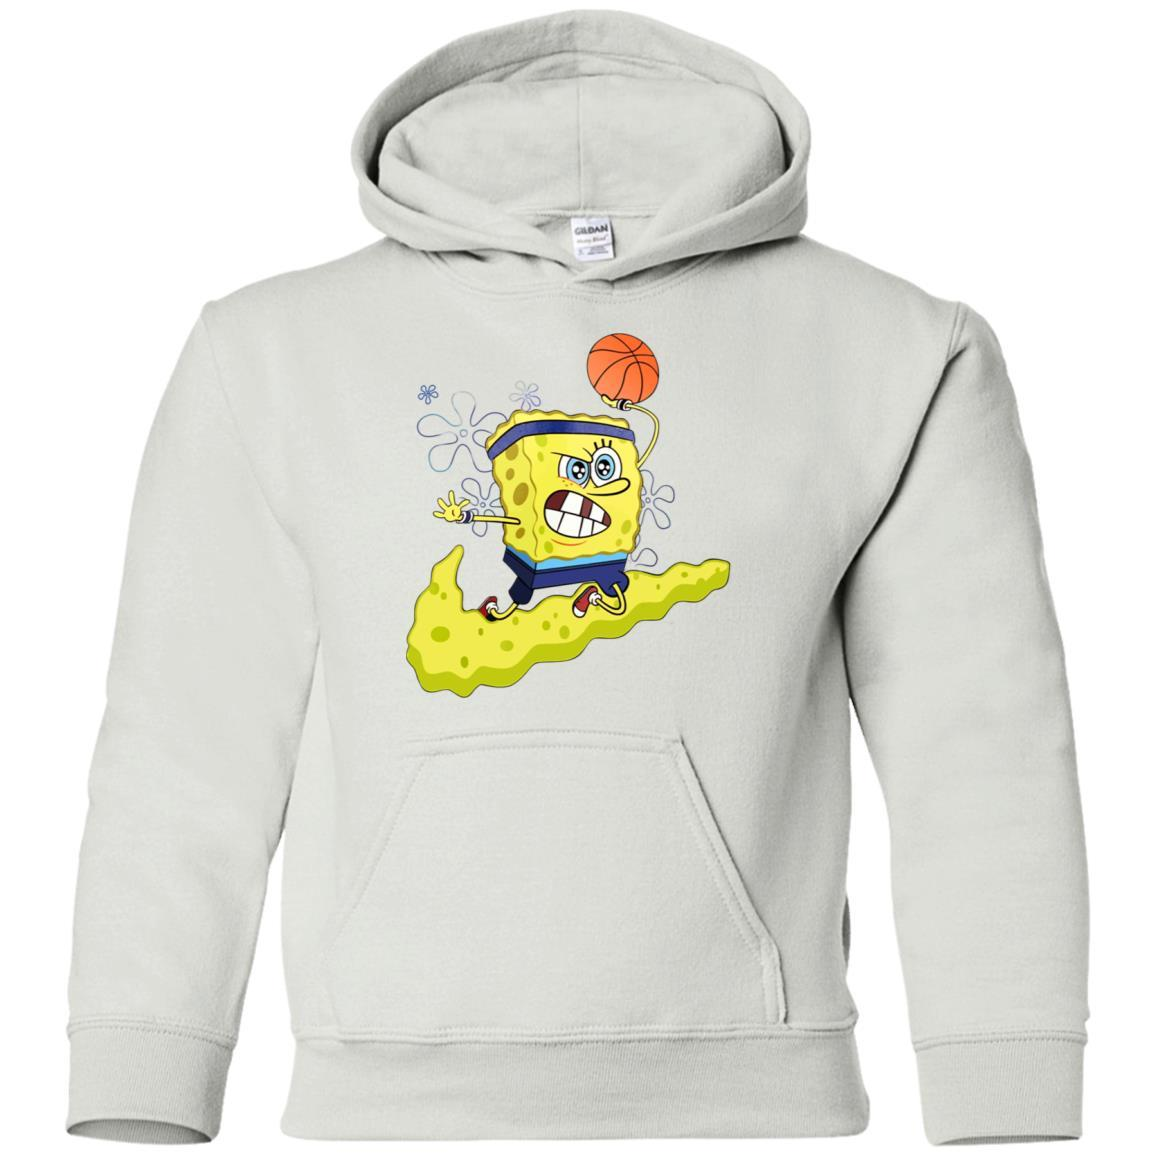 Kyrie IrvingBasketball Spongebob Hoodie for Youth